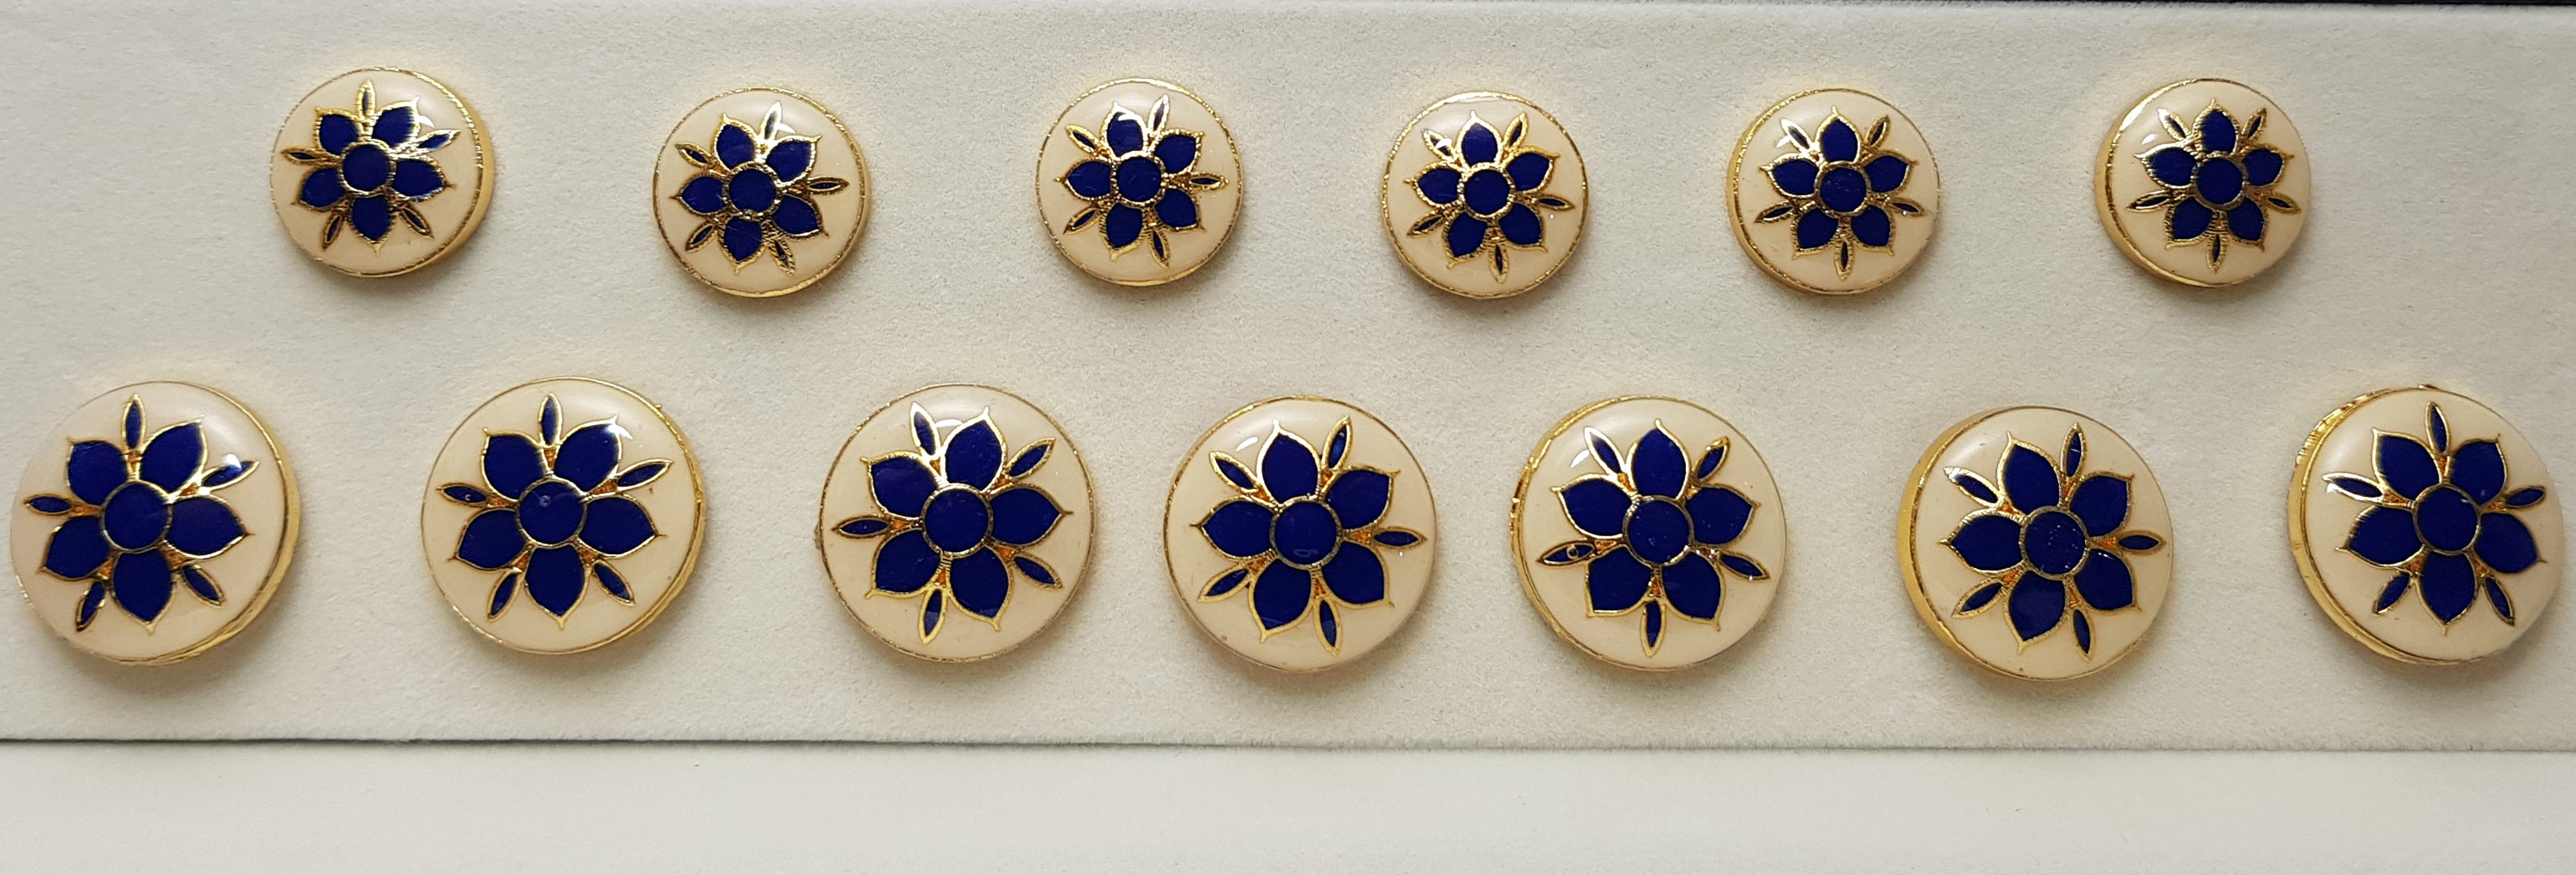 Blue-White Mugal Flower Meenakari-work Buttons